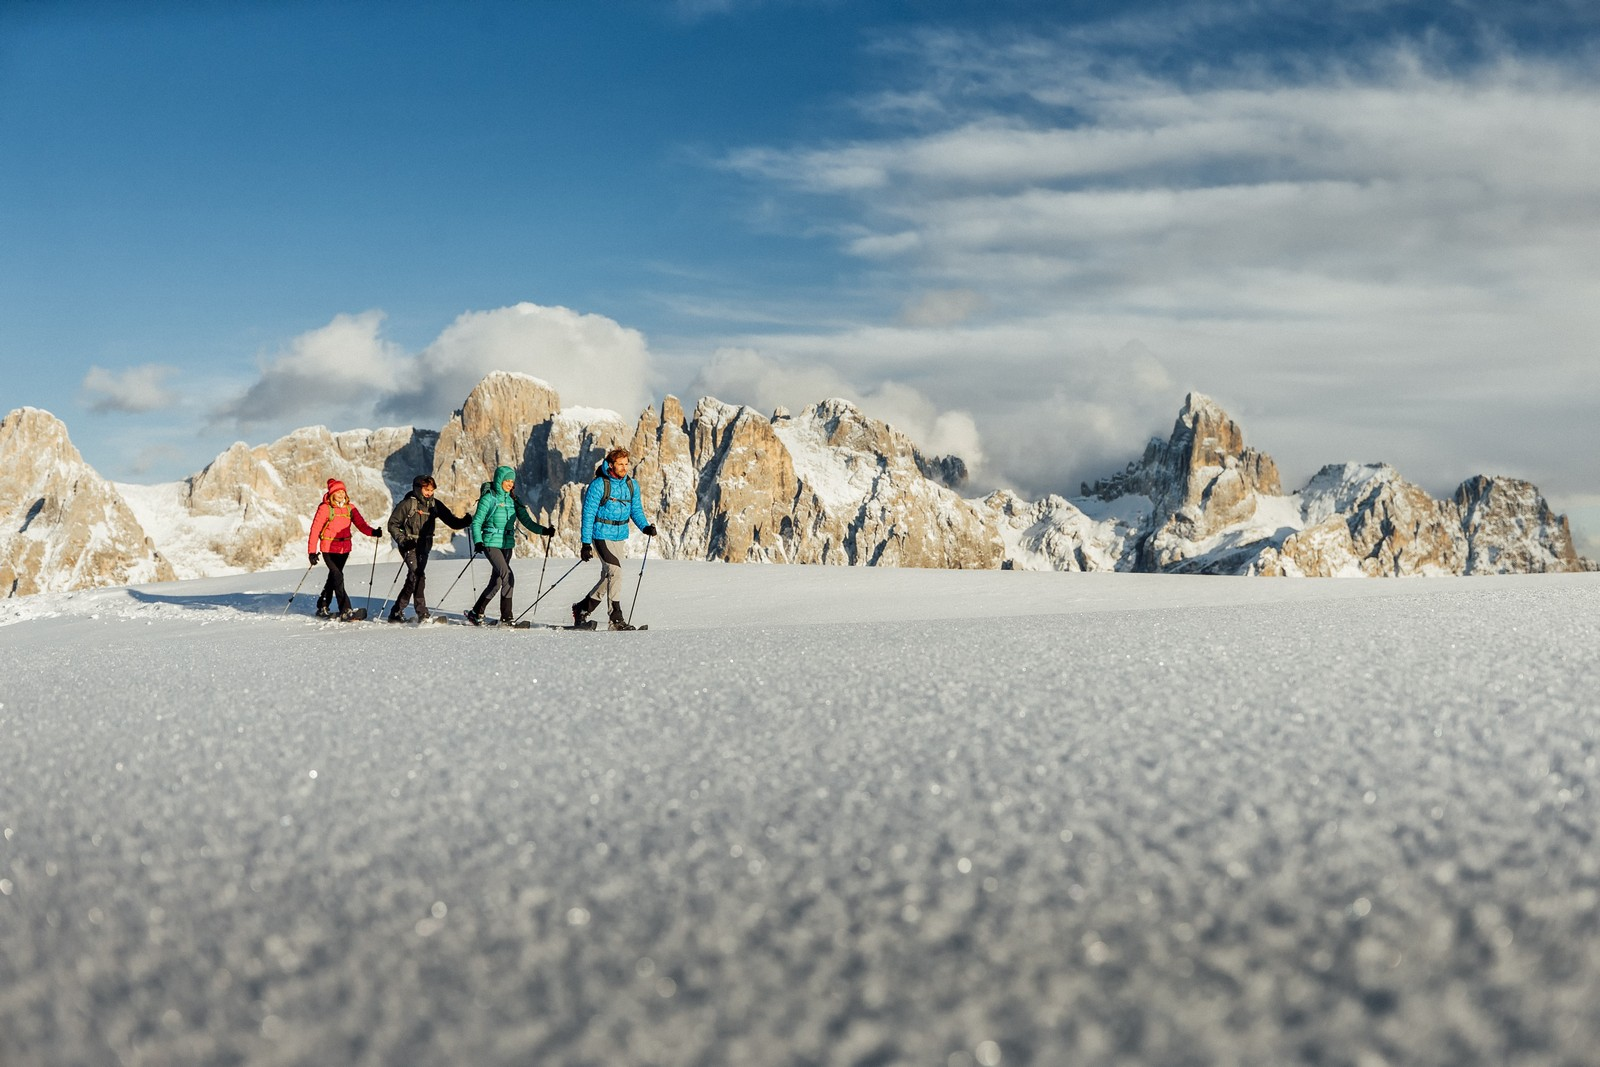 PALE DI SAN MARTINO: WORLD HERITAGE SITE